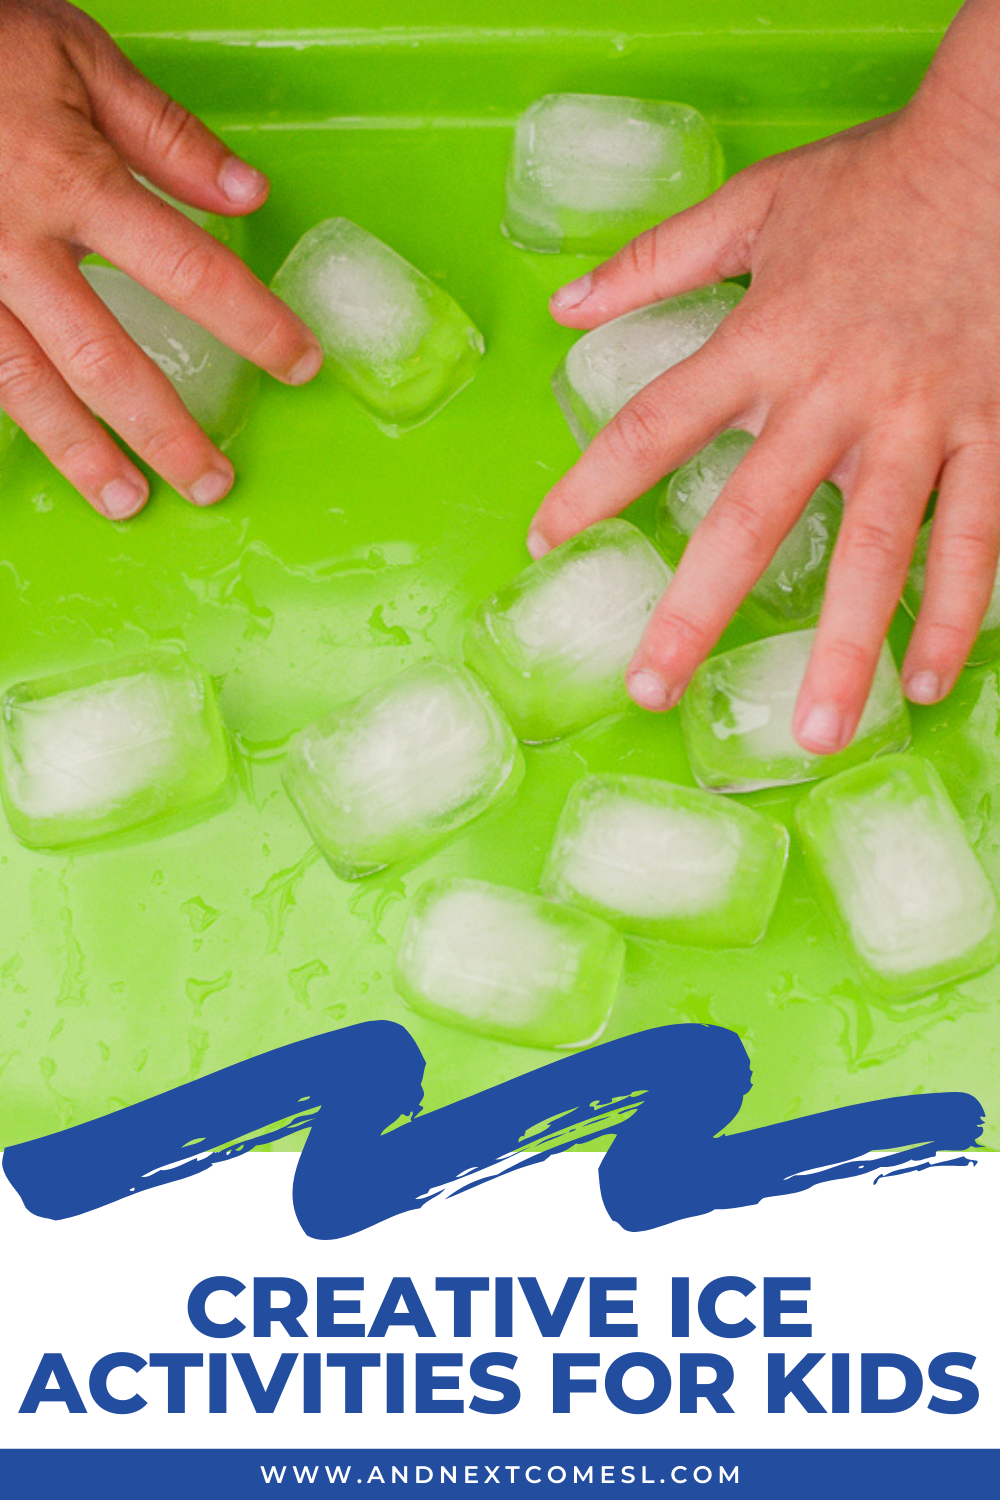 Creative & cool ice activities for toddlers and preschool kids - great sensory play ideas for summer!